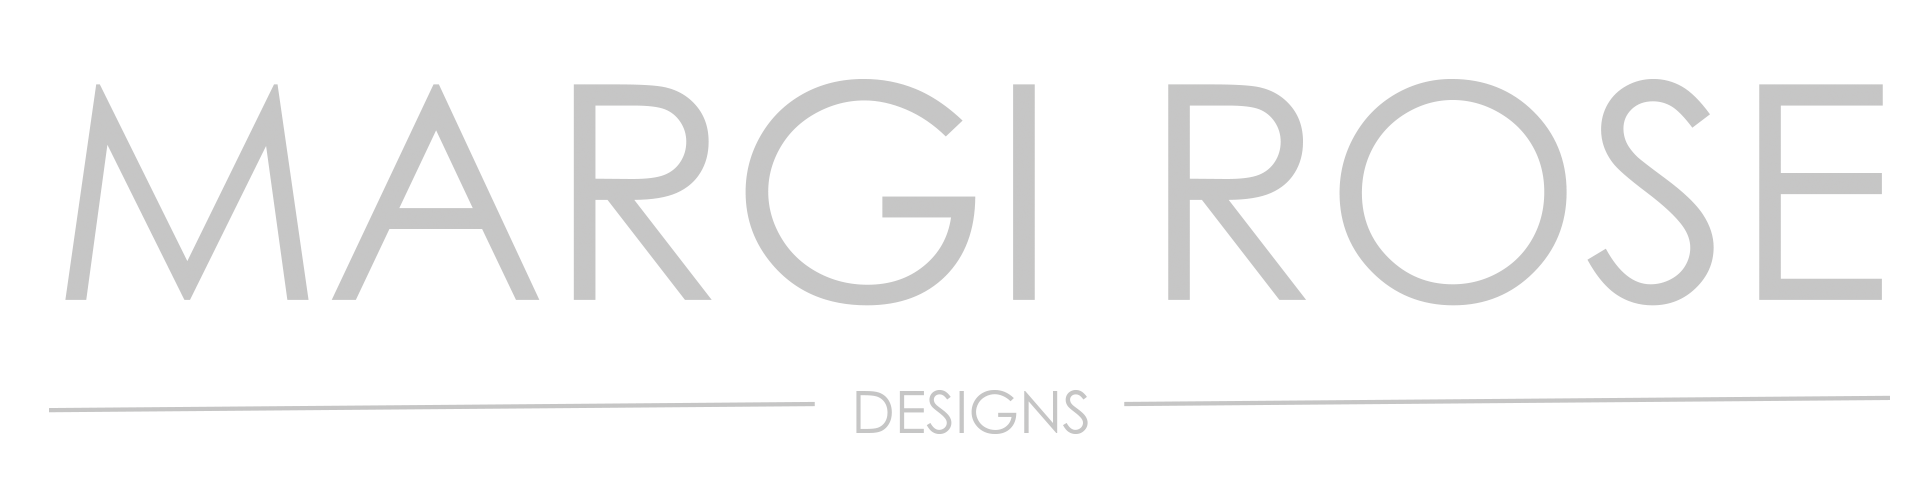 Margi Rose Designs. Professional interior designers and interior design consultants who work on projects of all sizes, from small bathrooms to large scale house refurbishments. Click to find out more.